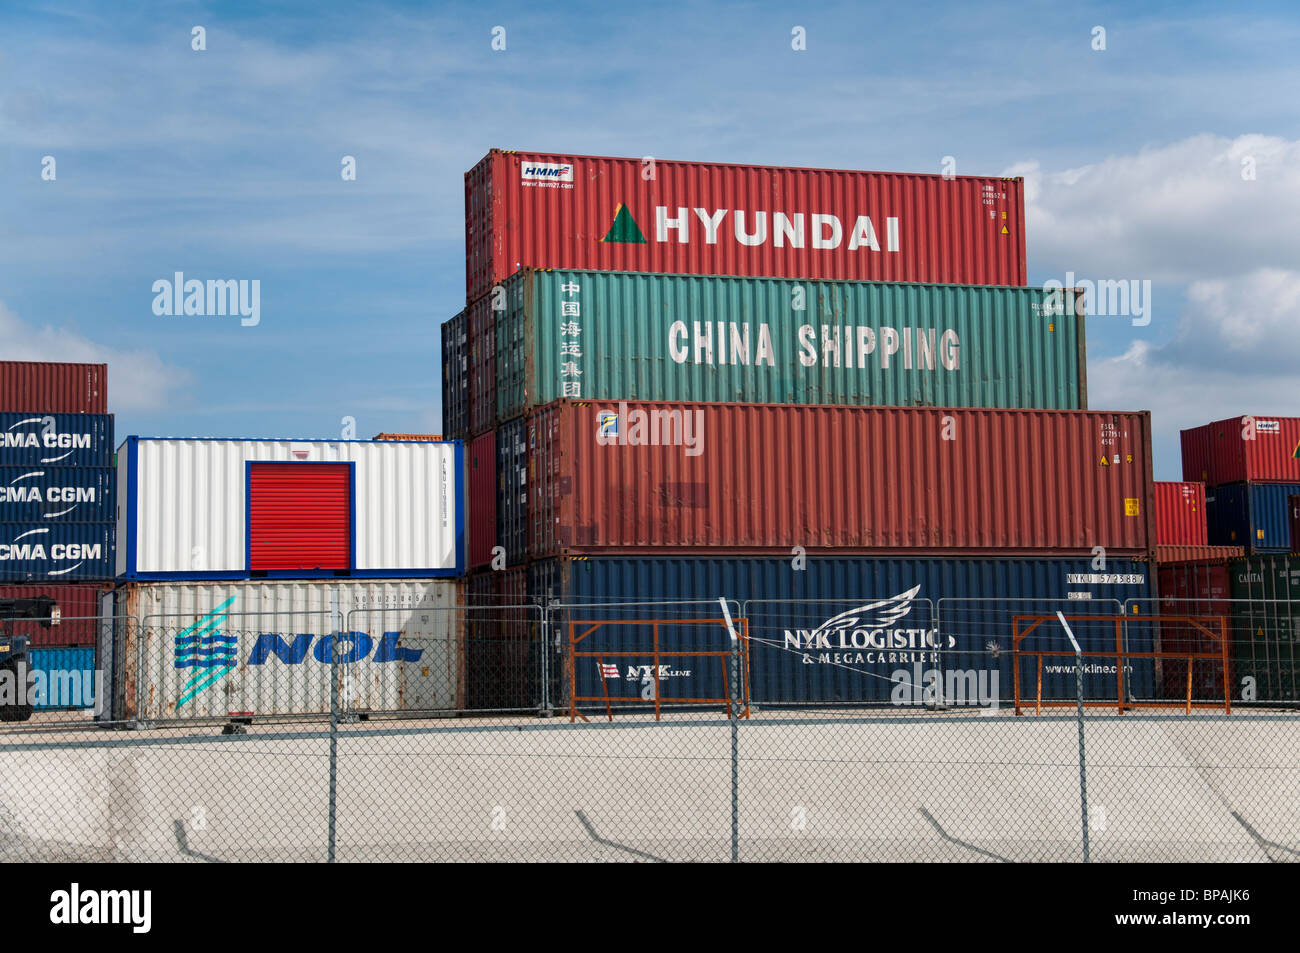 Shipping containers stacked up at Southampton docks in Southampton, England. Stock Photo